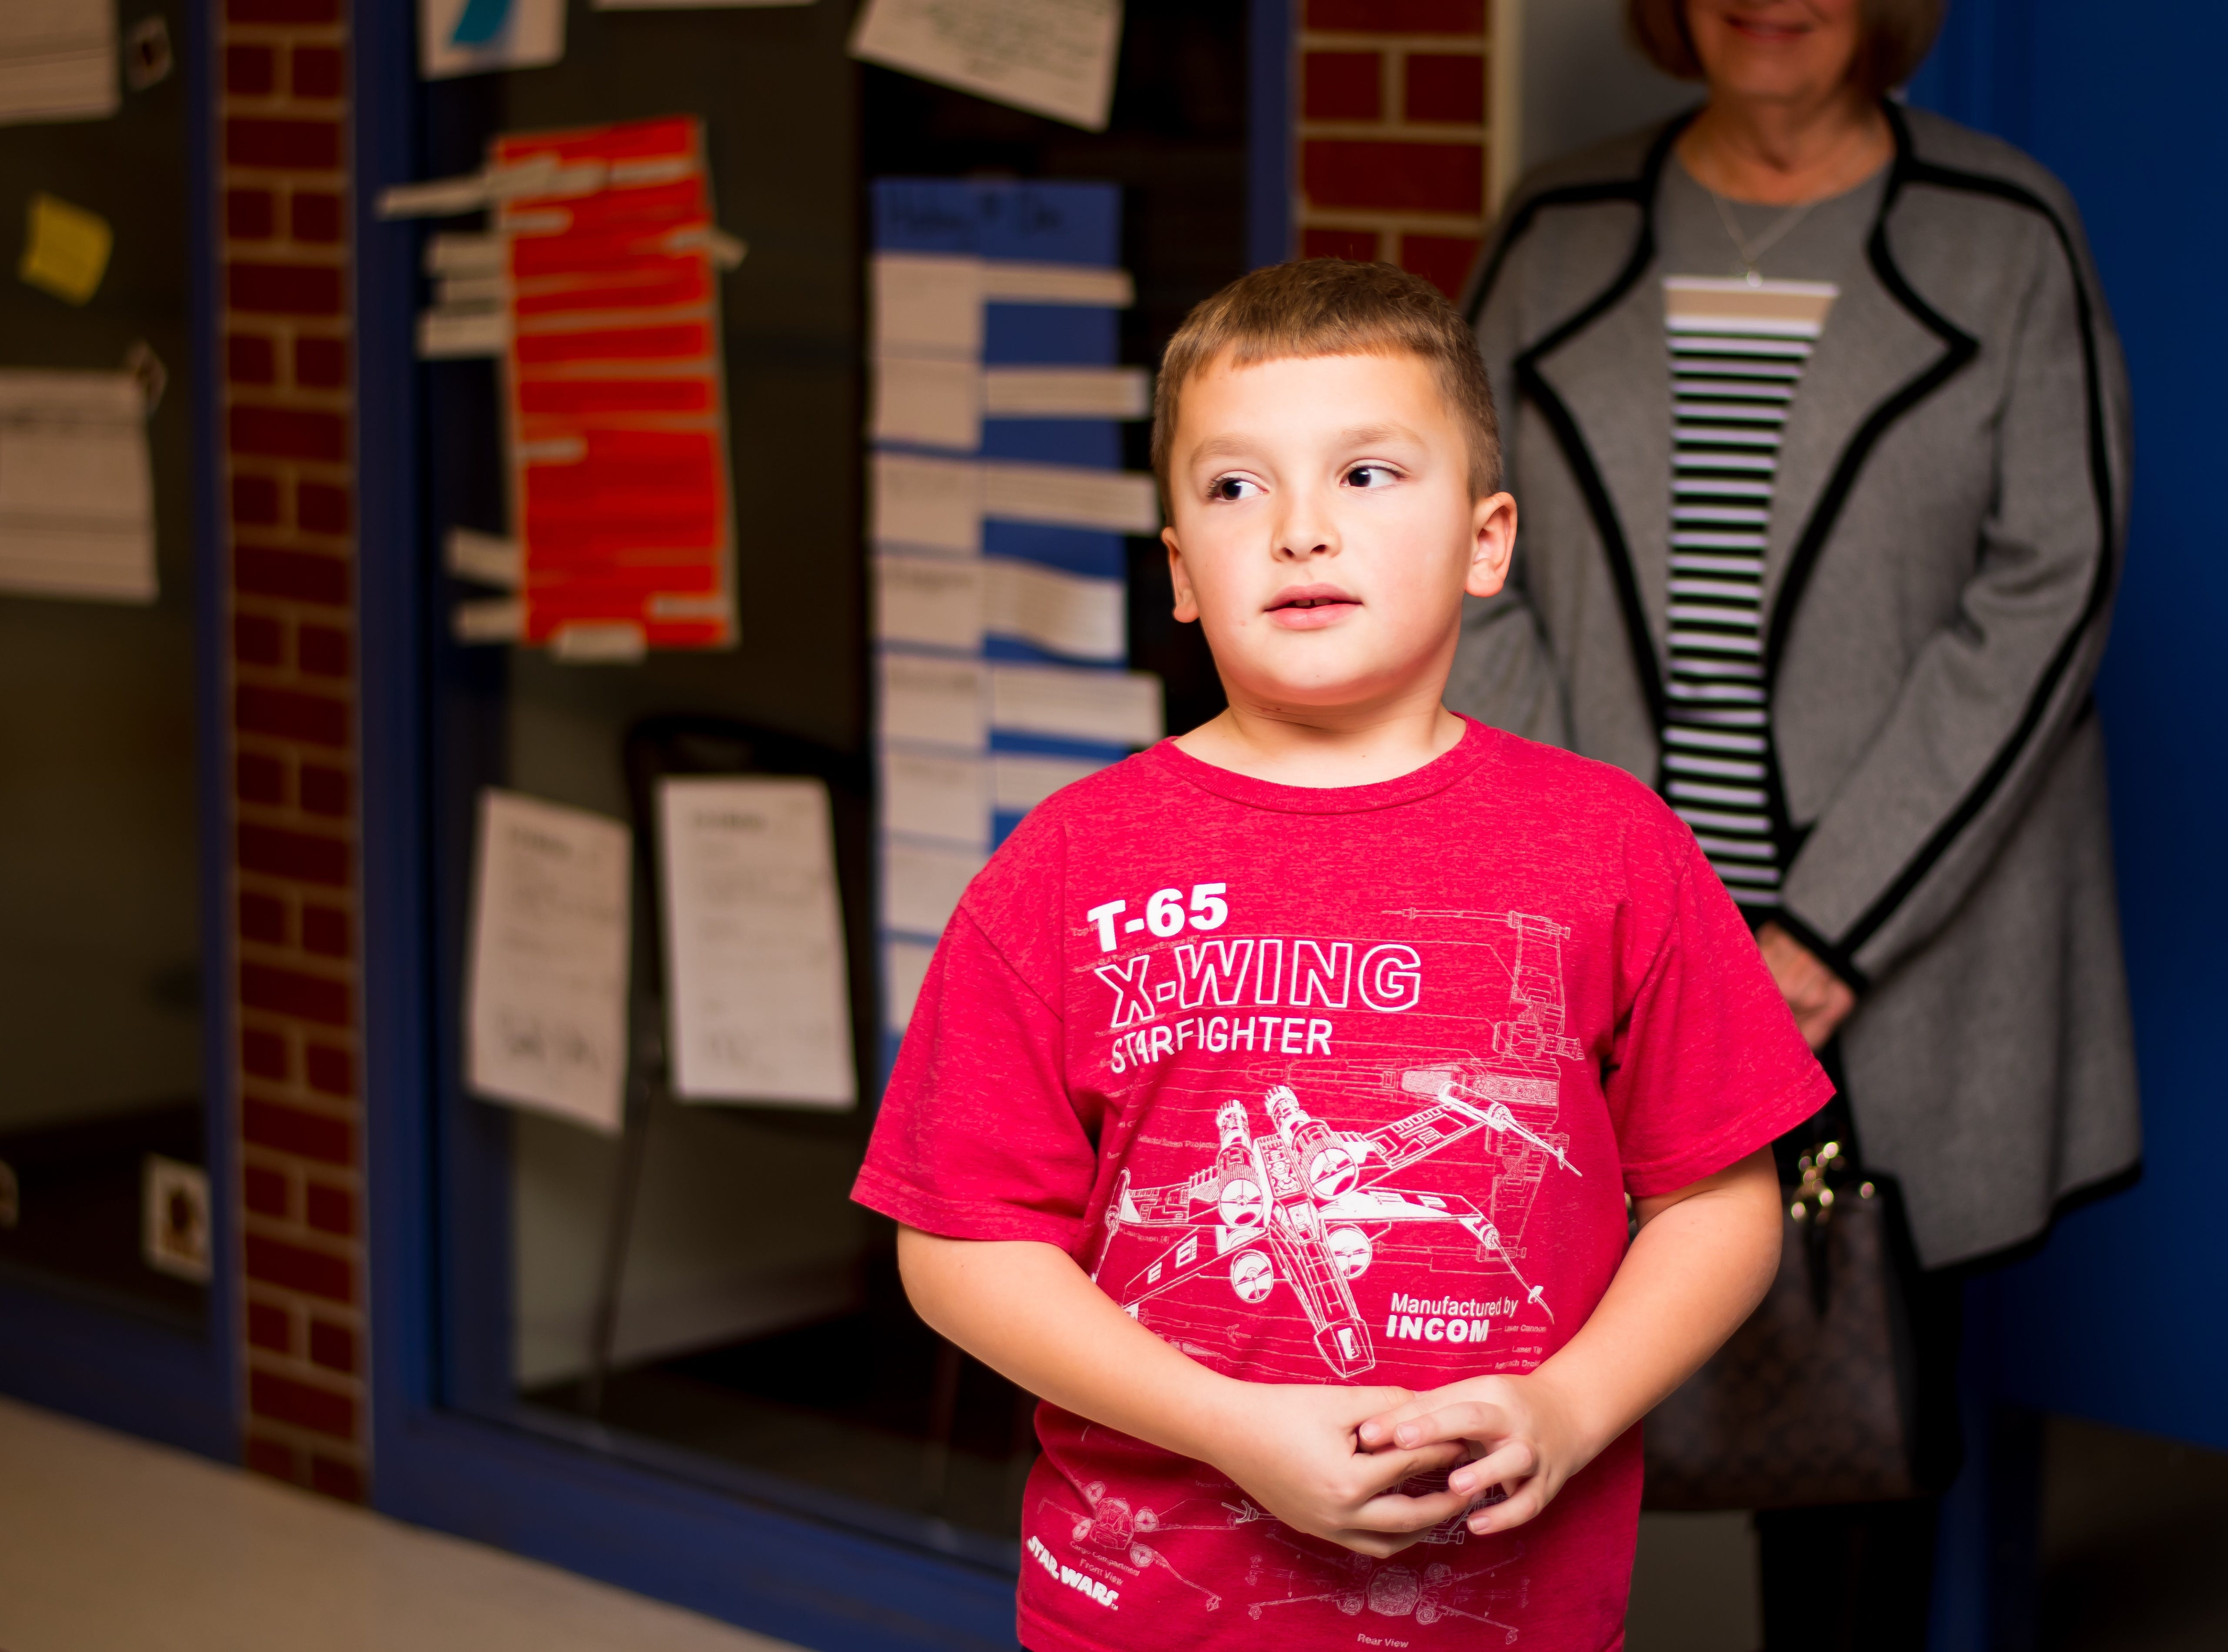 Matthew Bileau, 8, of Clive starts the Celebrate Crestview event off with a game of rock, paper, scissors on Tuesday, Dec. 11, 2018 at Crestview School of Inquiry in Clive. Students learned the history of immigration in Clive and the impact it has had on Crestview.